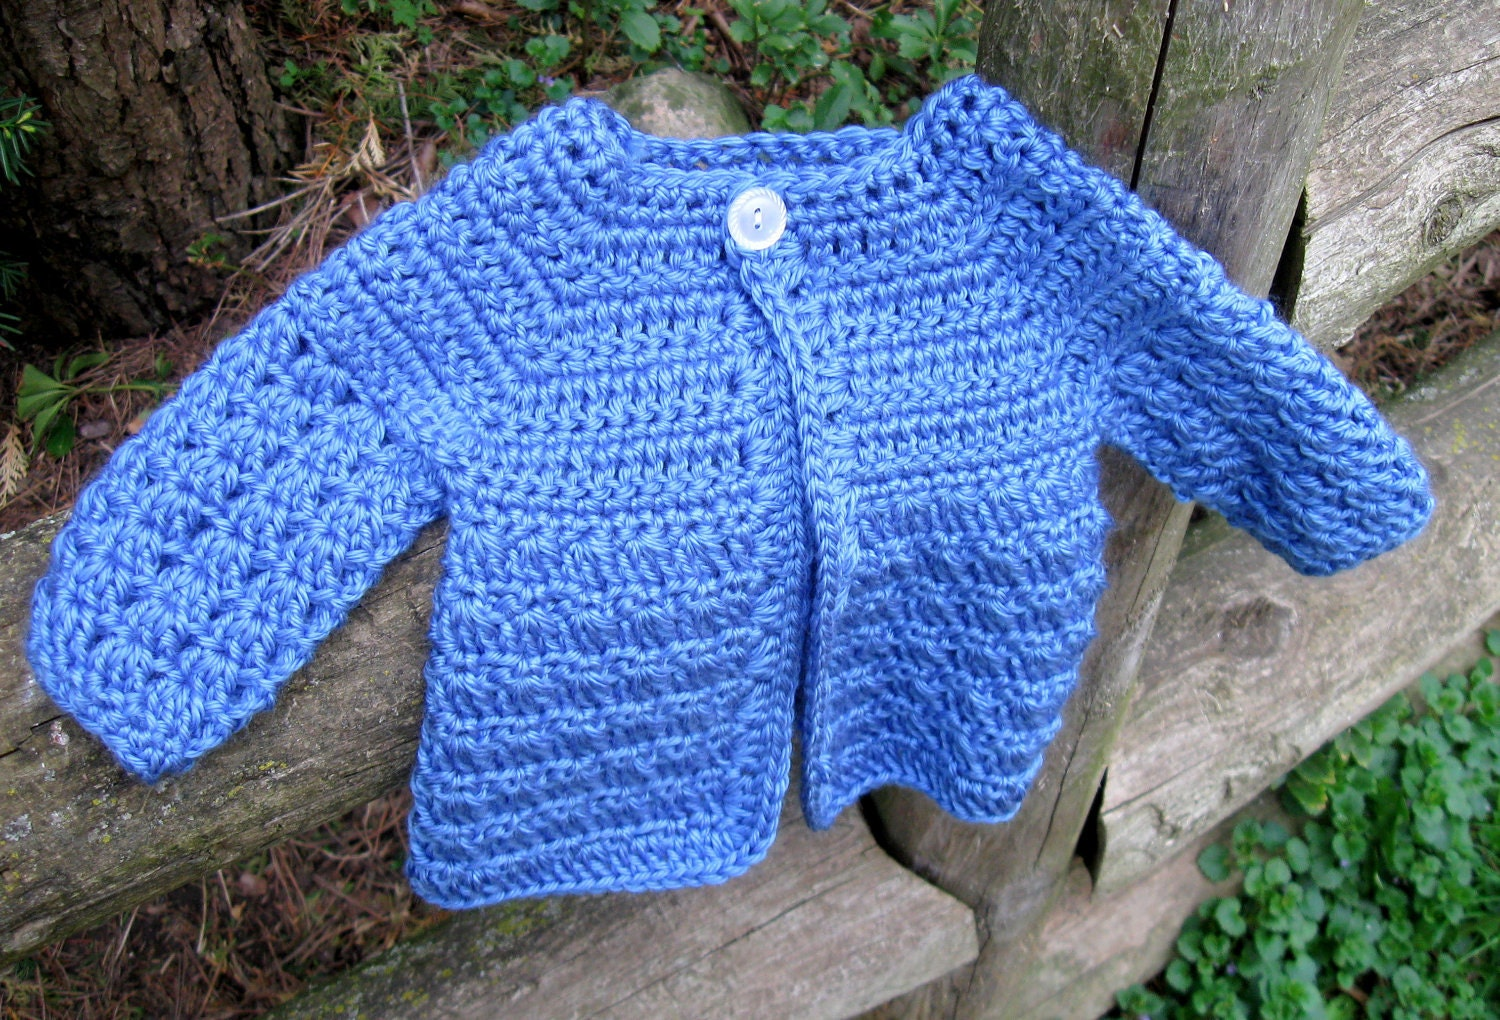 Free Crochet Patterns For Baby Boy Beanies : Crochet Patterns Baby Sweater